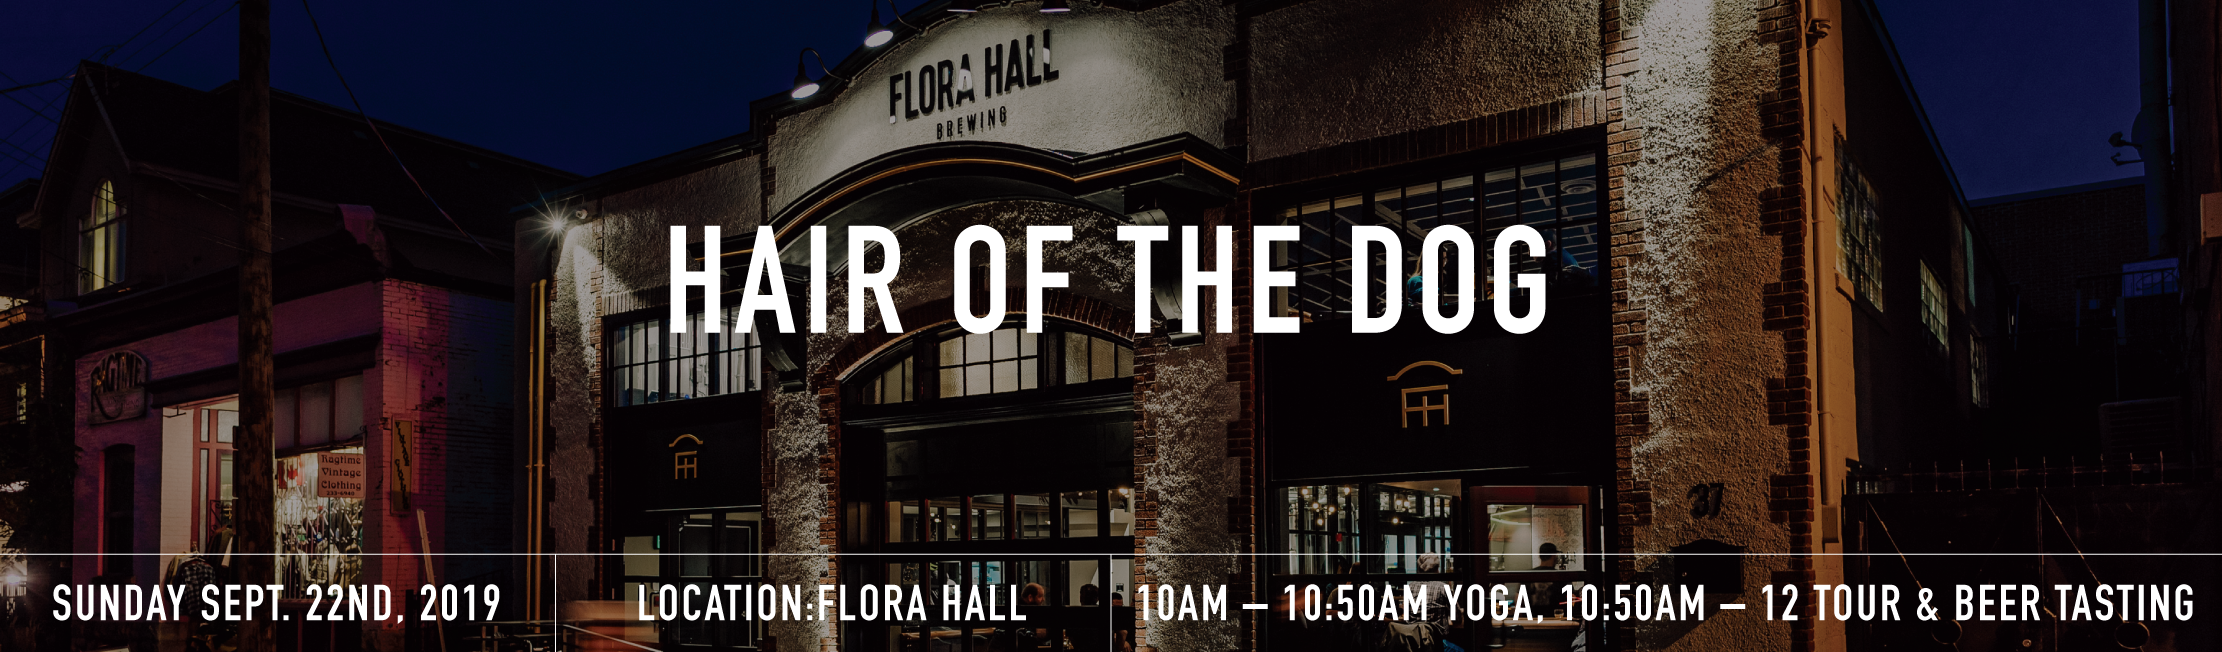 Hair of the dog banner  1